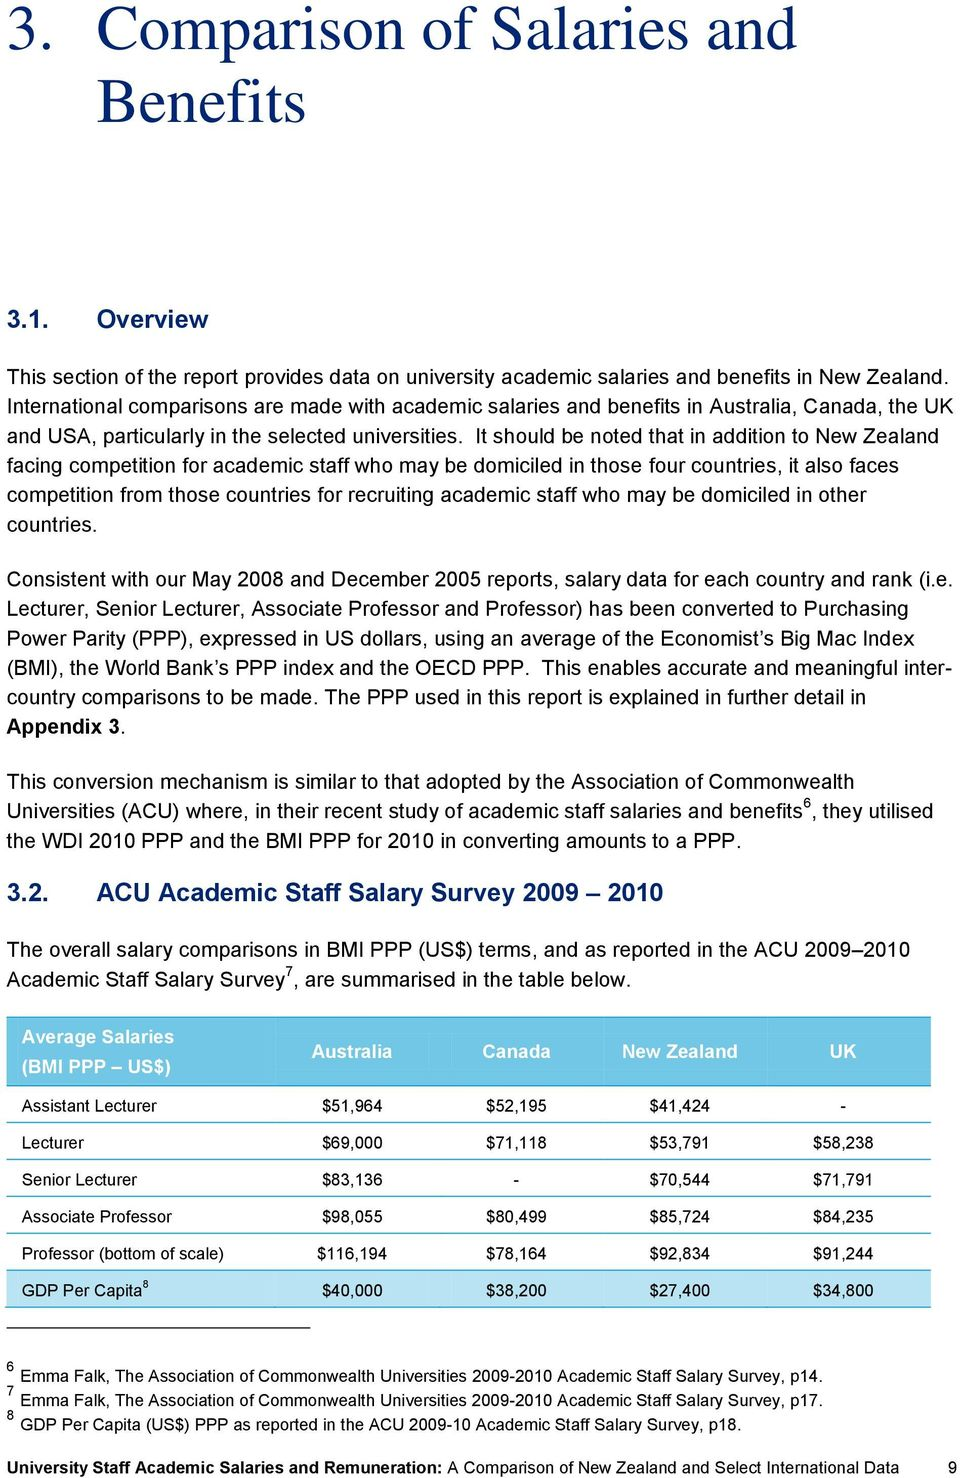 It should be noted that in addition to New Zealand facing competition for academic staff who may be domiciled in those four countries, it also faces competition from those countries for recruiting